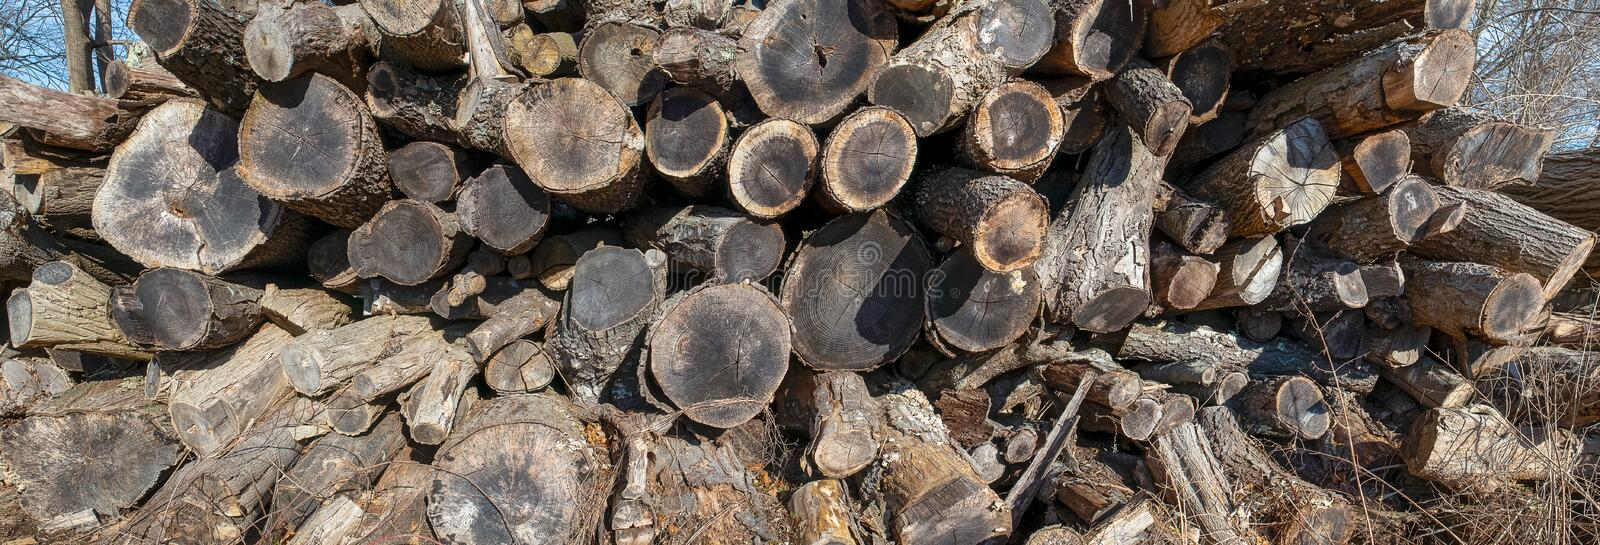 Recycled twig, fuel, tree branches, a pile of wood logs. Firewood stock photos